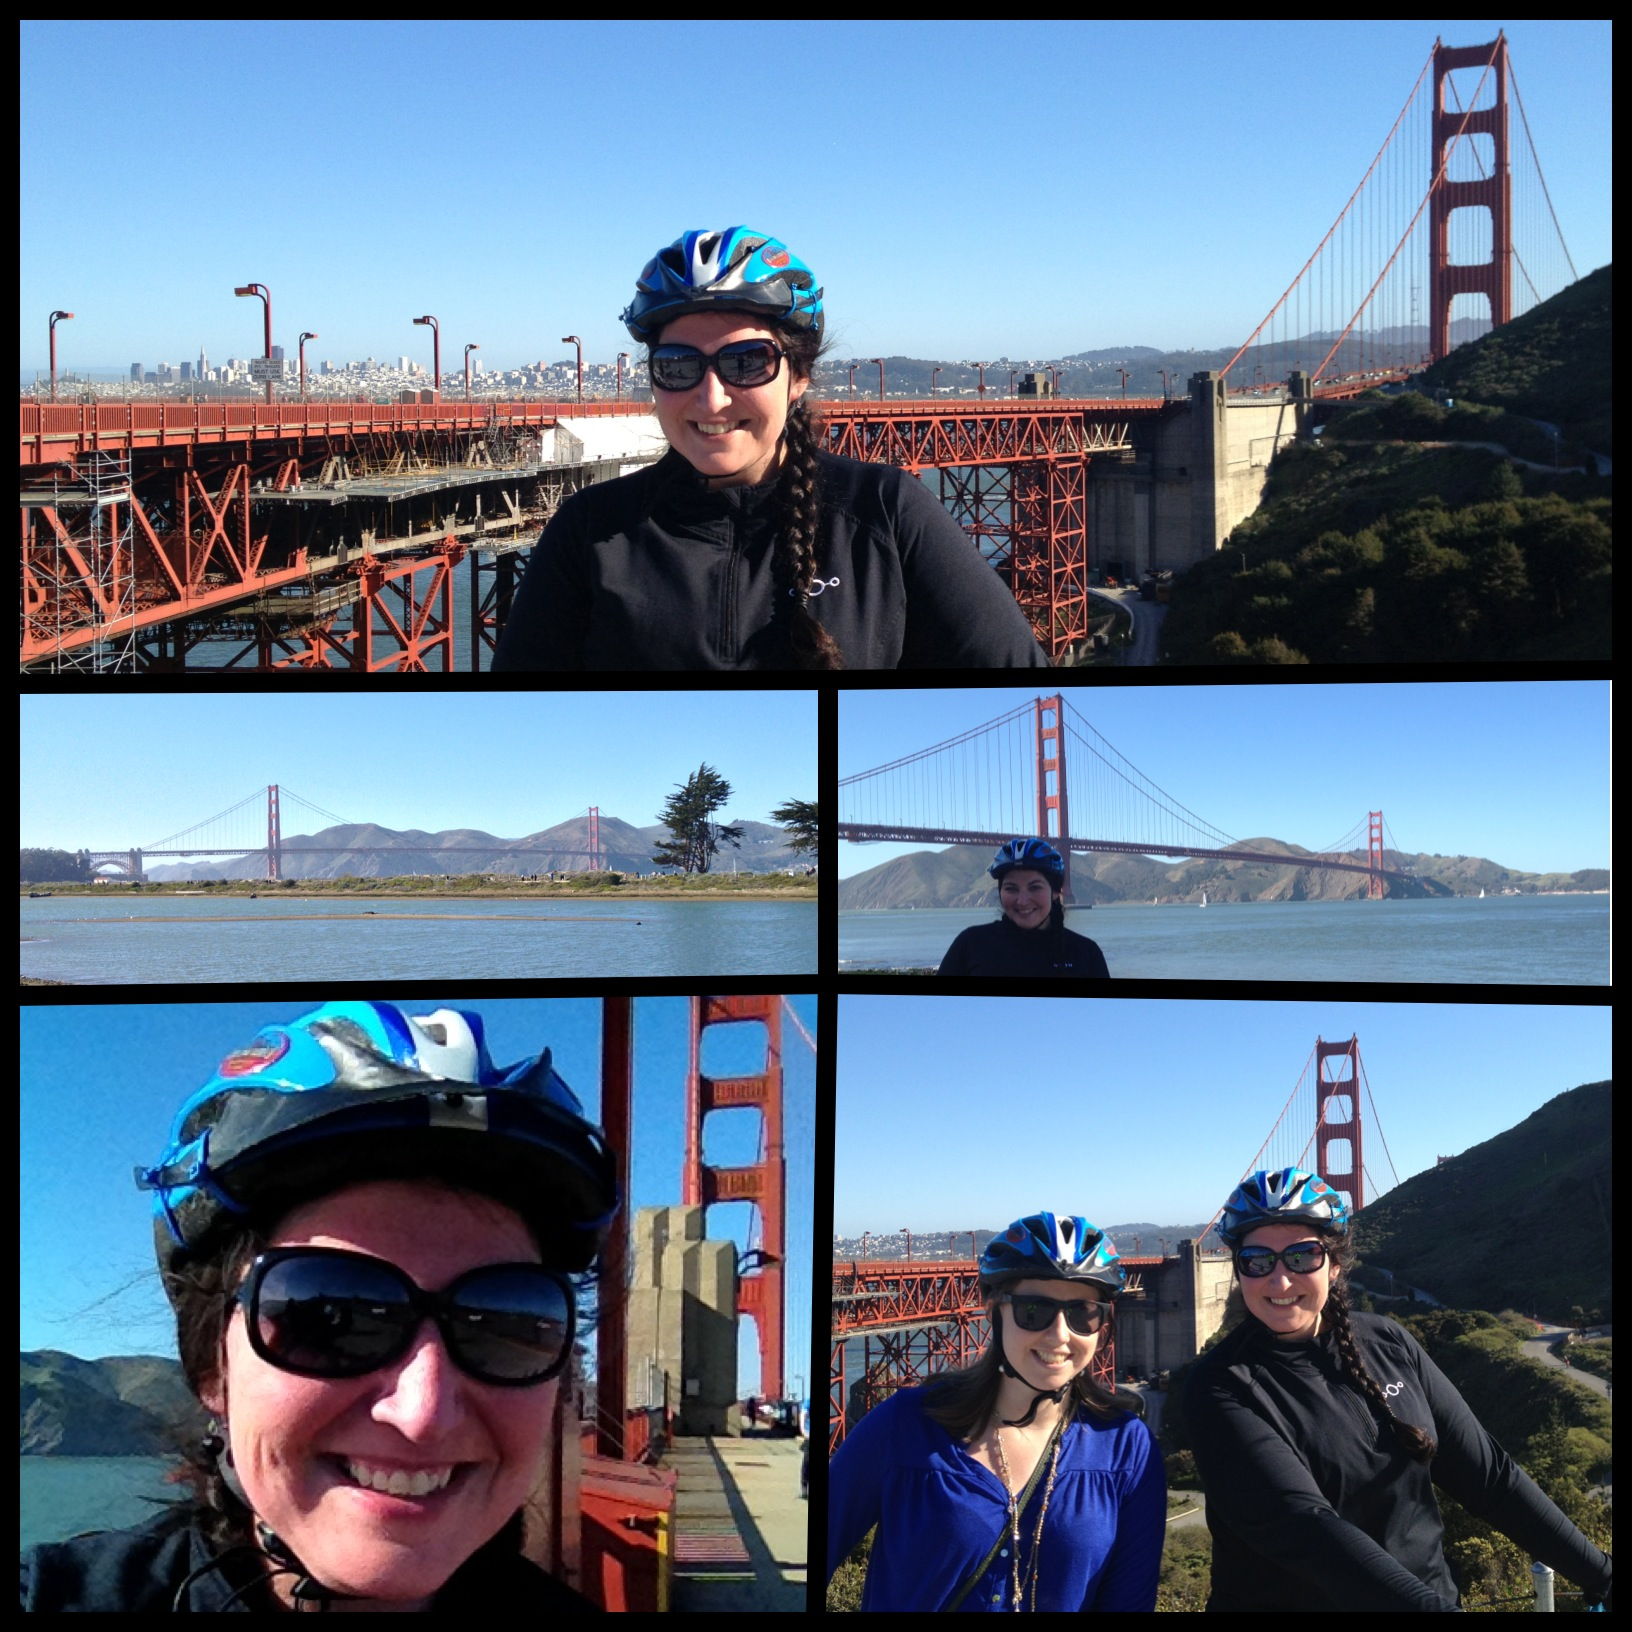 golden gate bridge biking collage